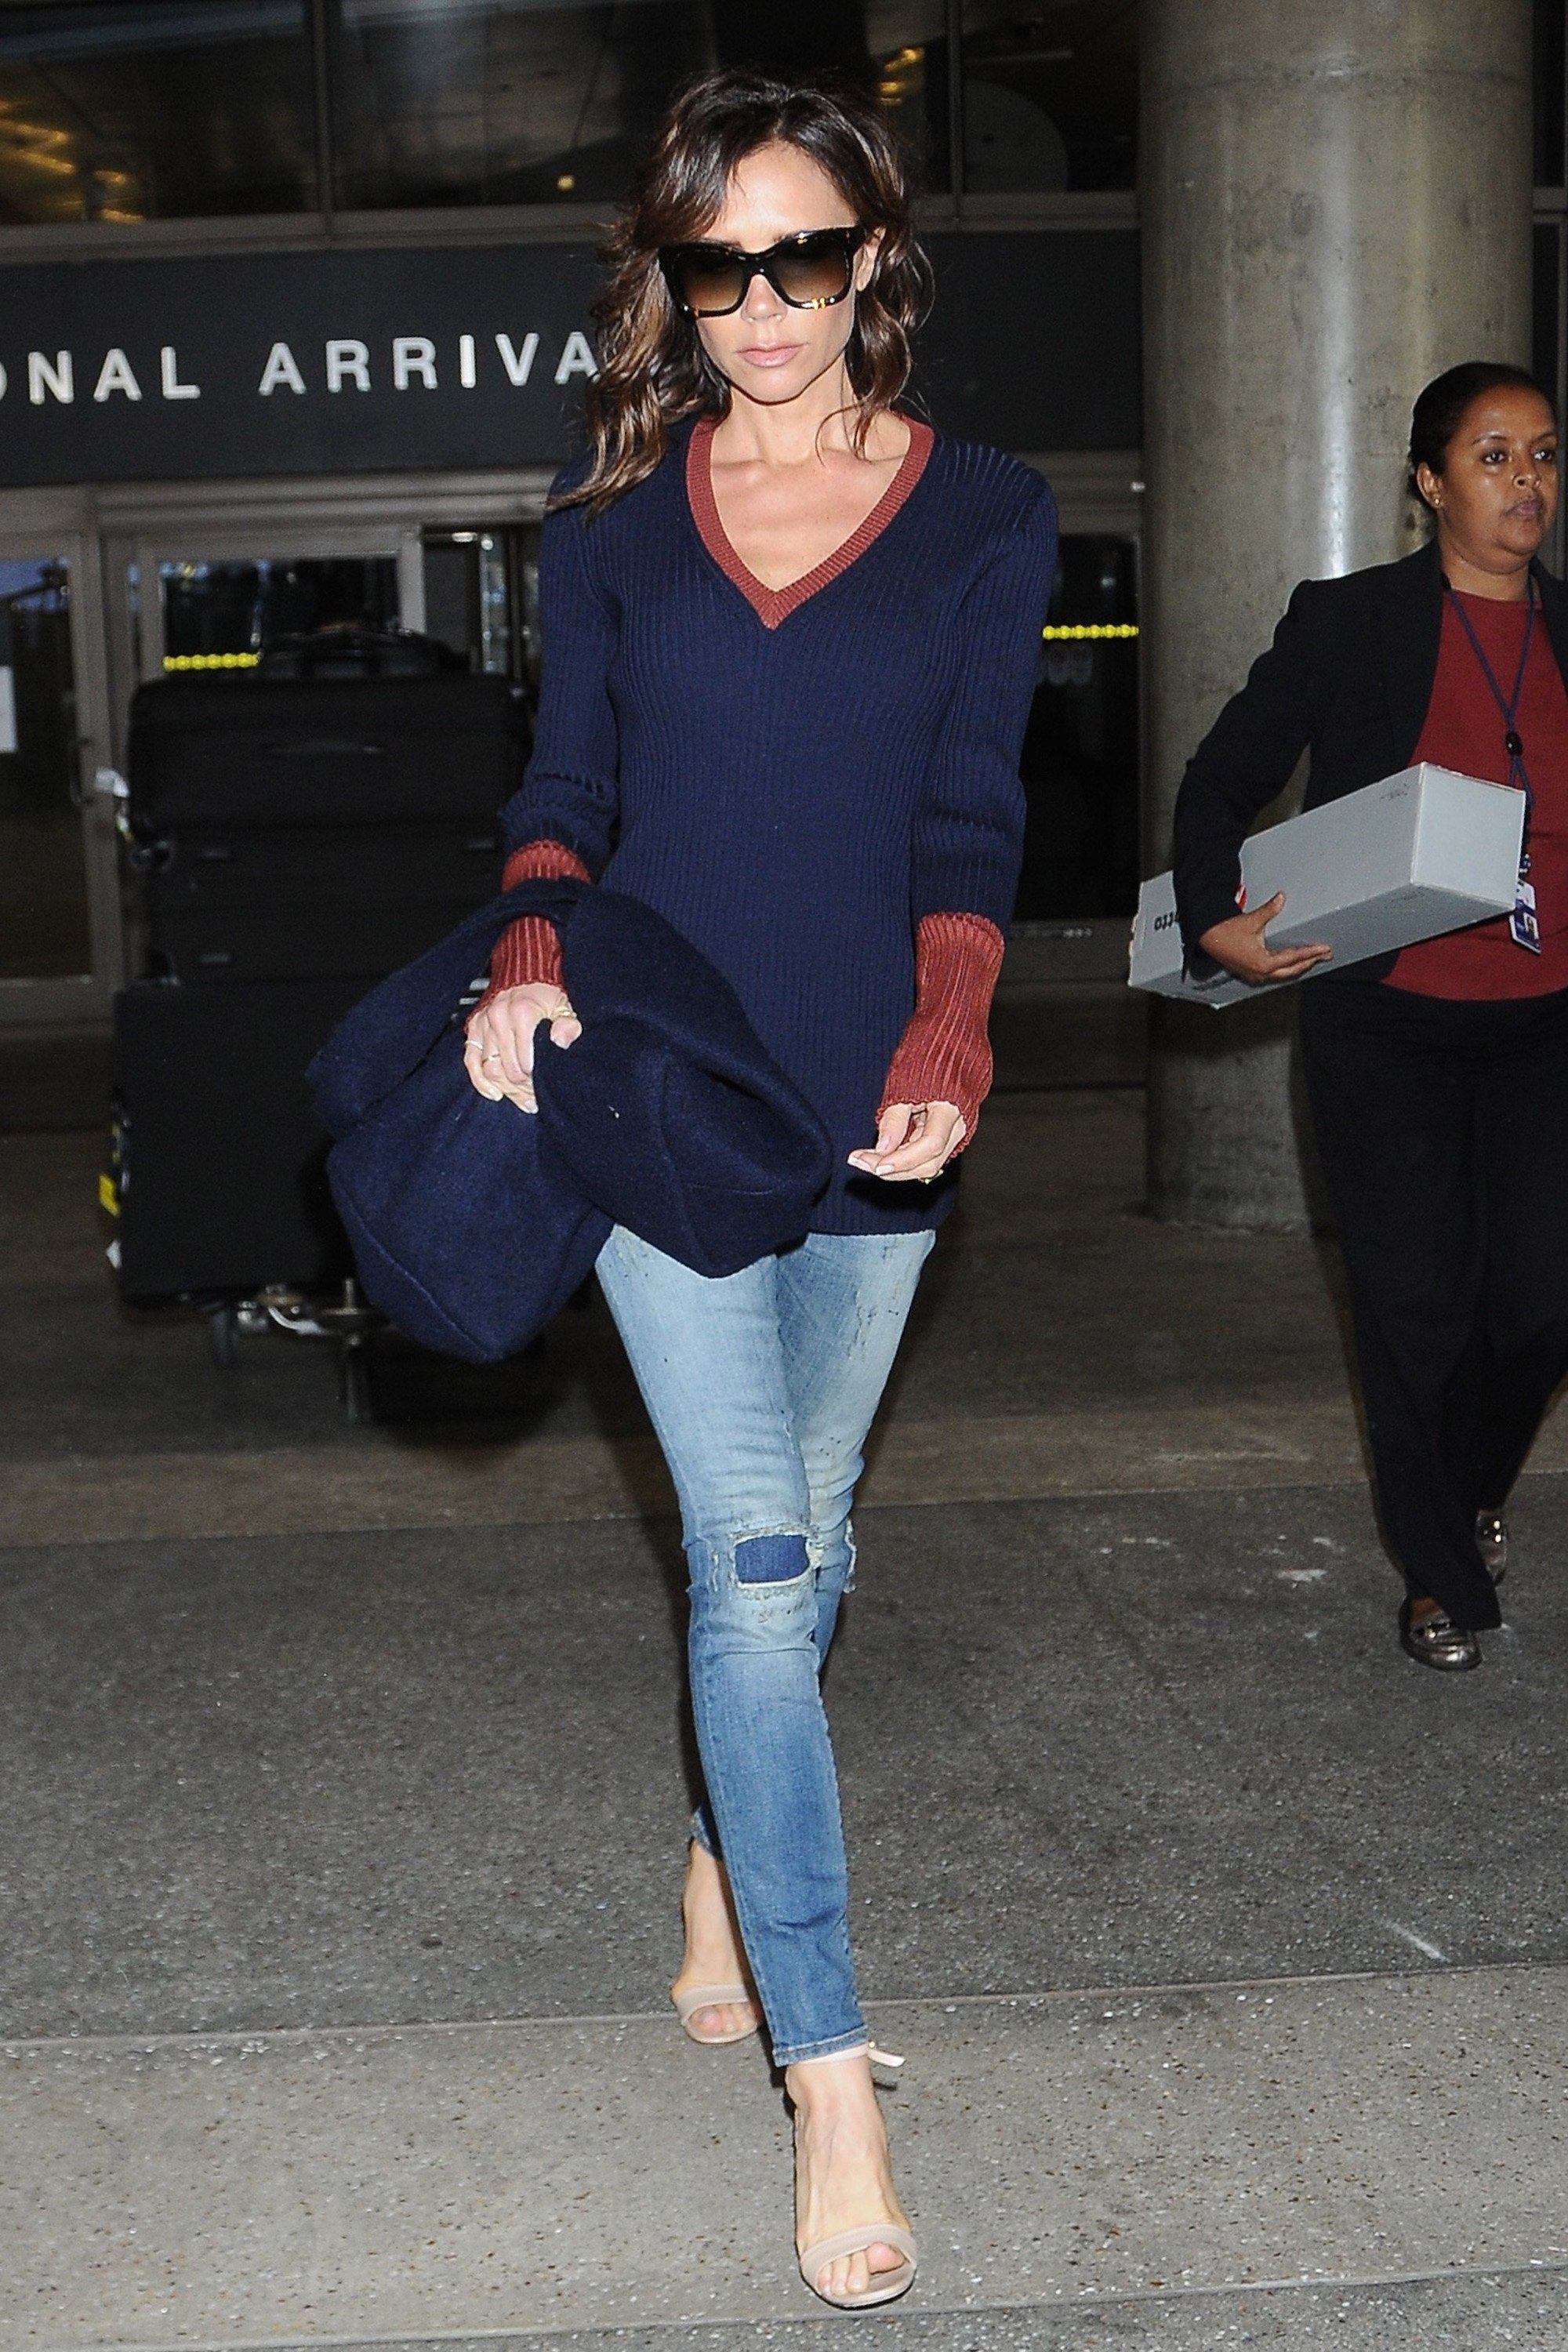 Victoria Beckham in Jeans  A Polished Airport Look ff78c5e8f